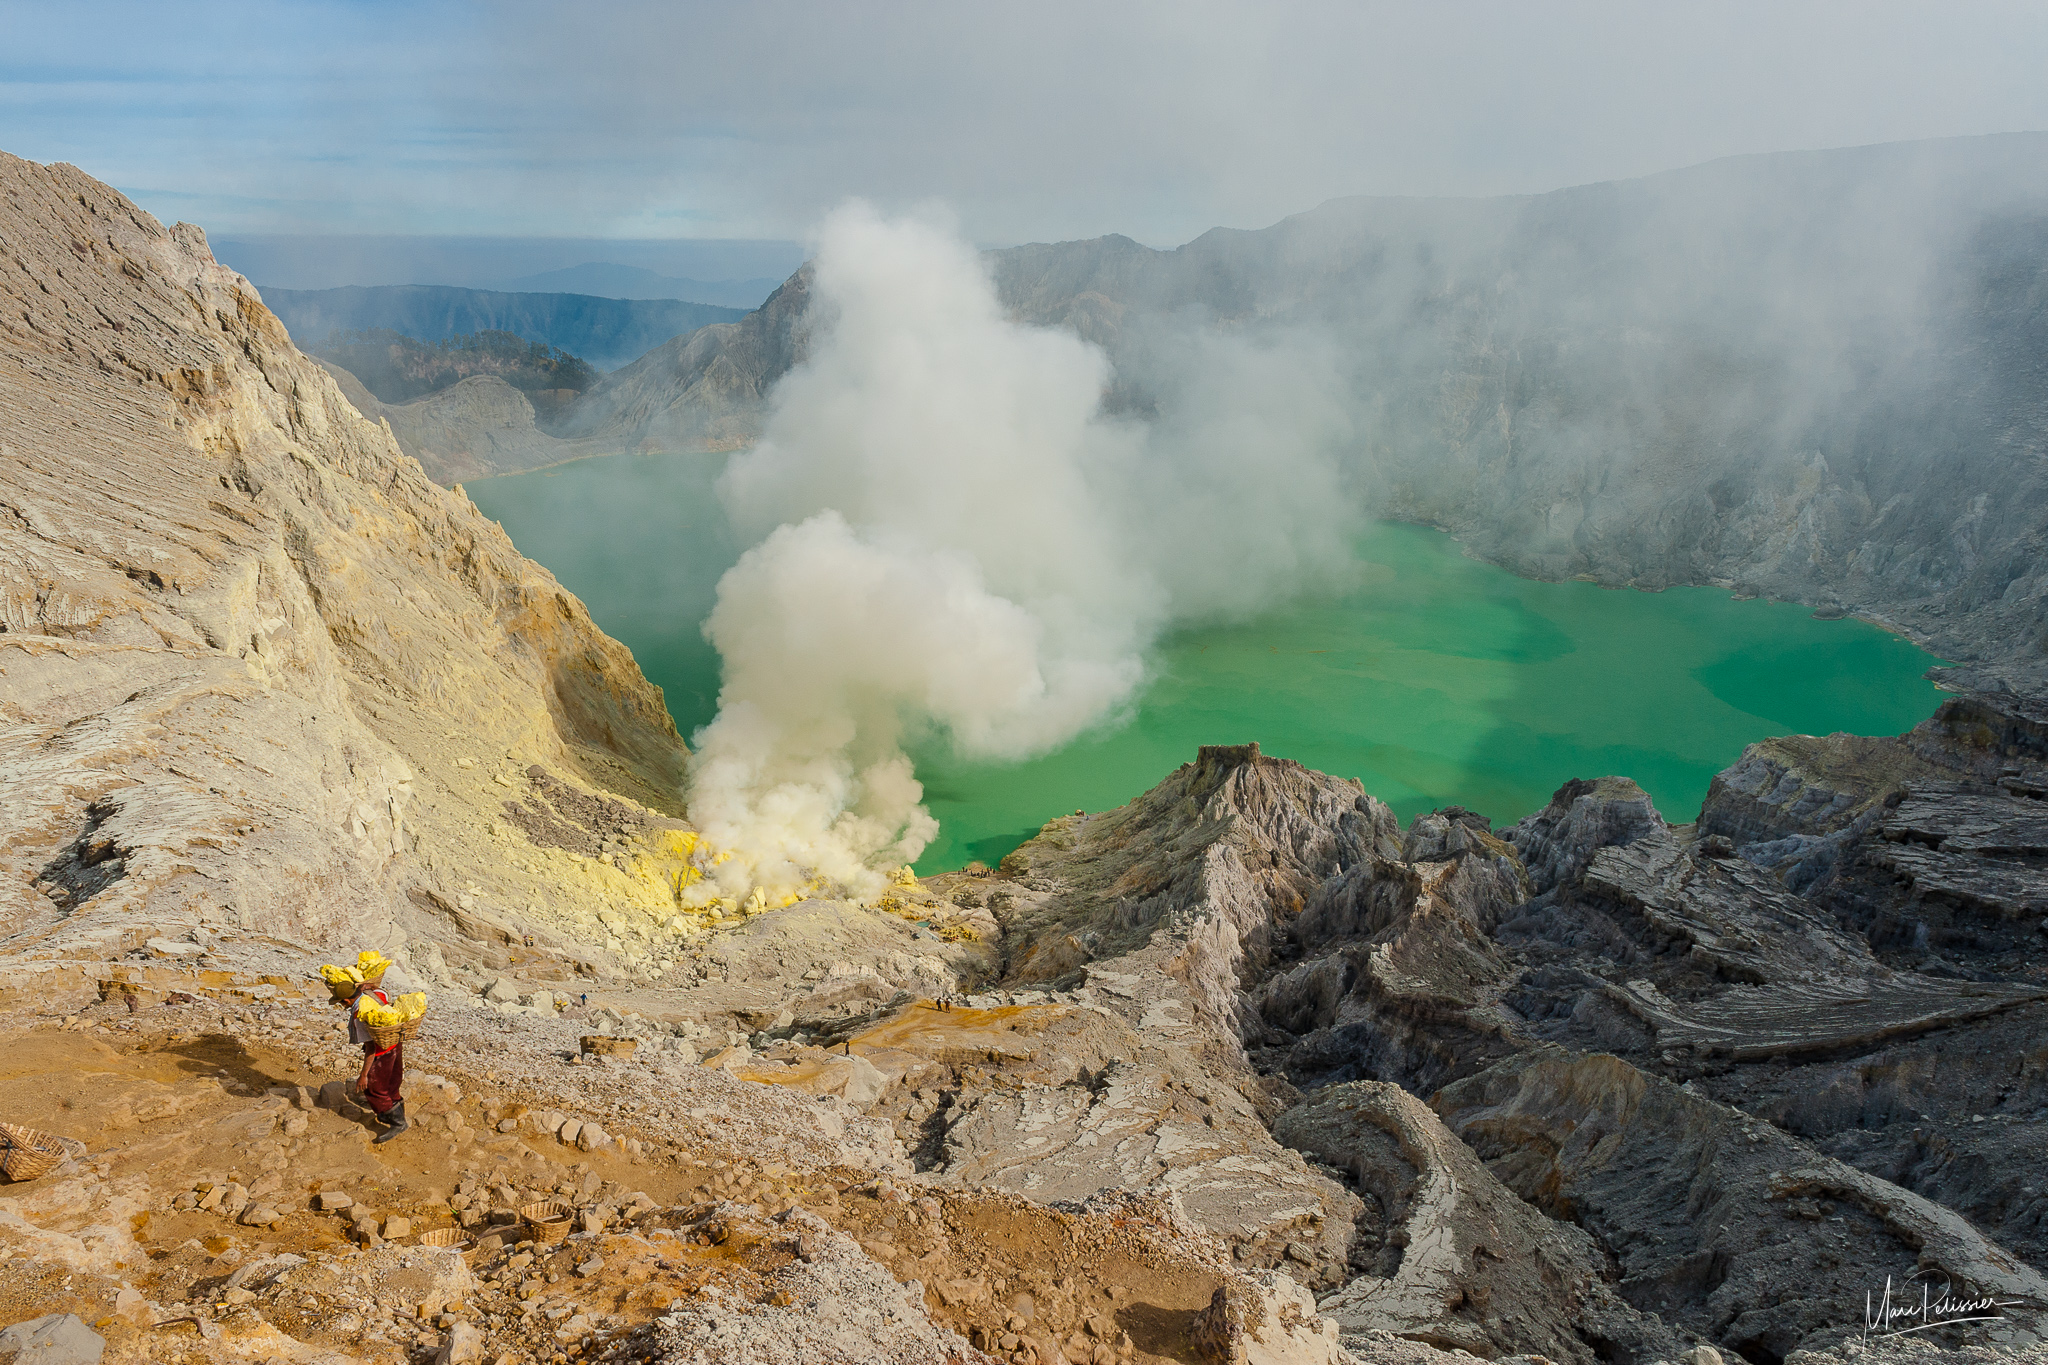 The Kawah Ijen acid lake volcano, Indonesia